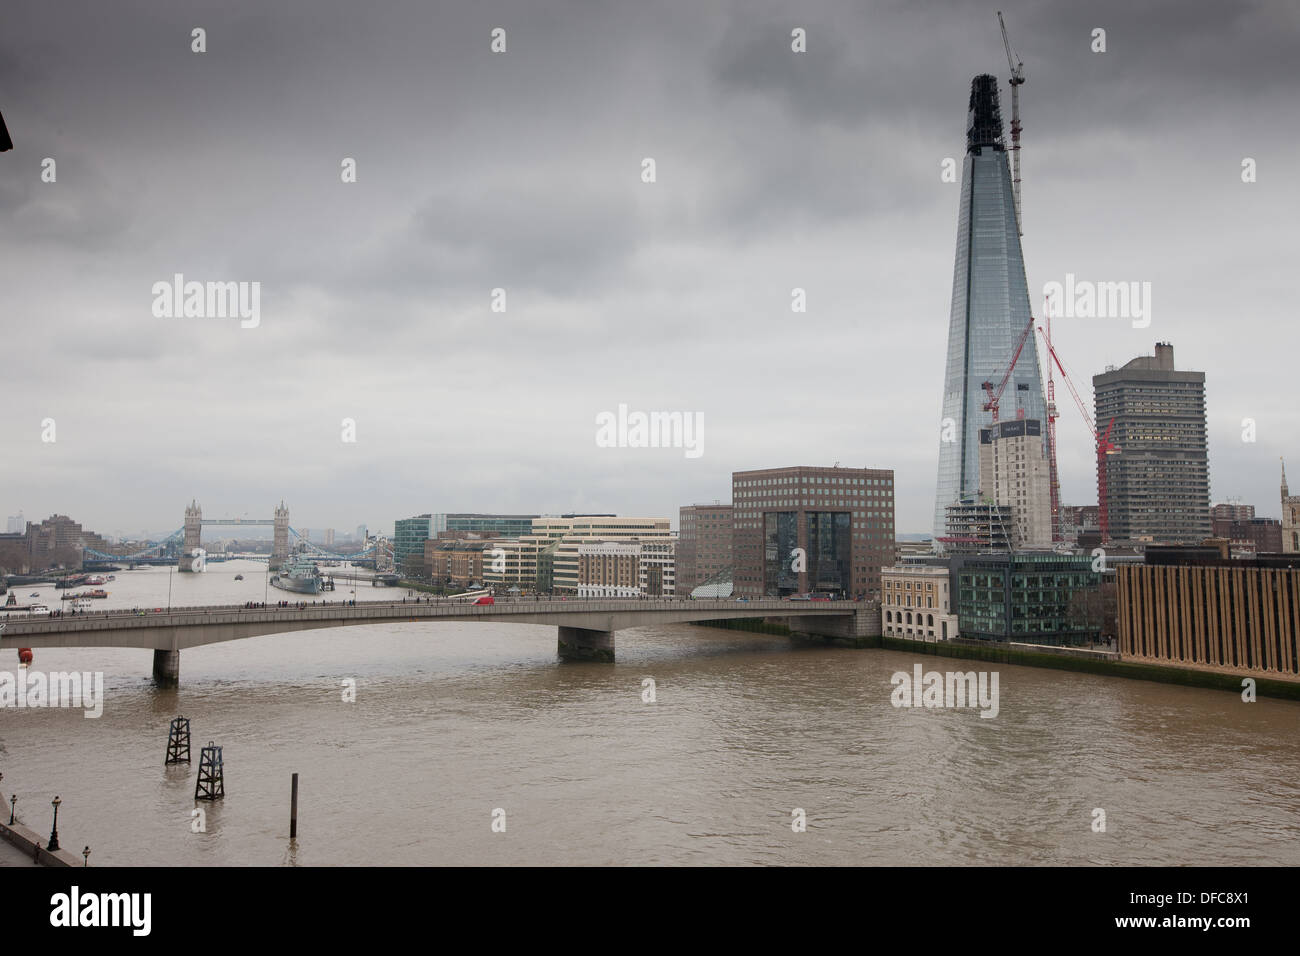 Looking east down the Thames in London at the Shard building on a gloomy day. - Stock Image